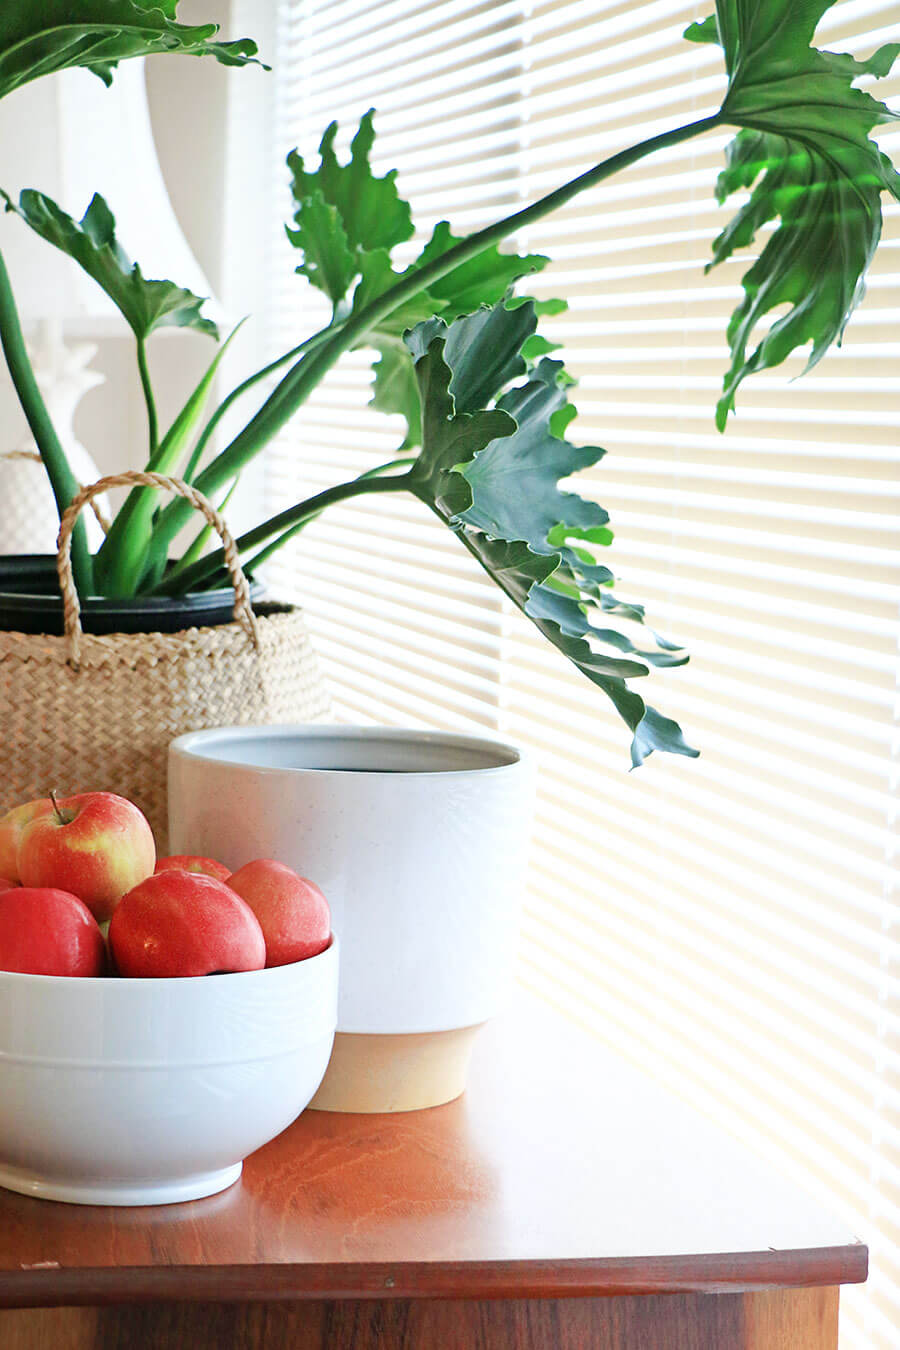 Apples-in-a-bowl-and-plant-in-a-basket